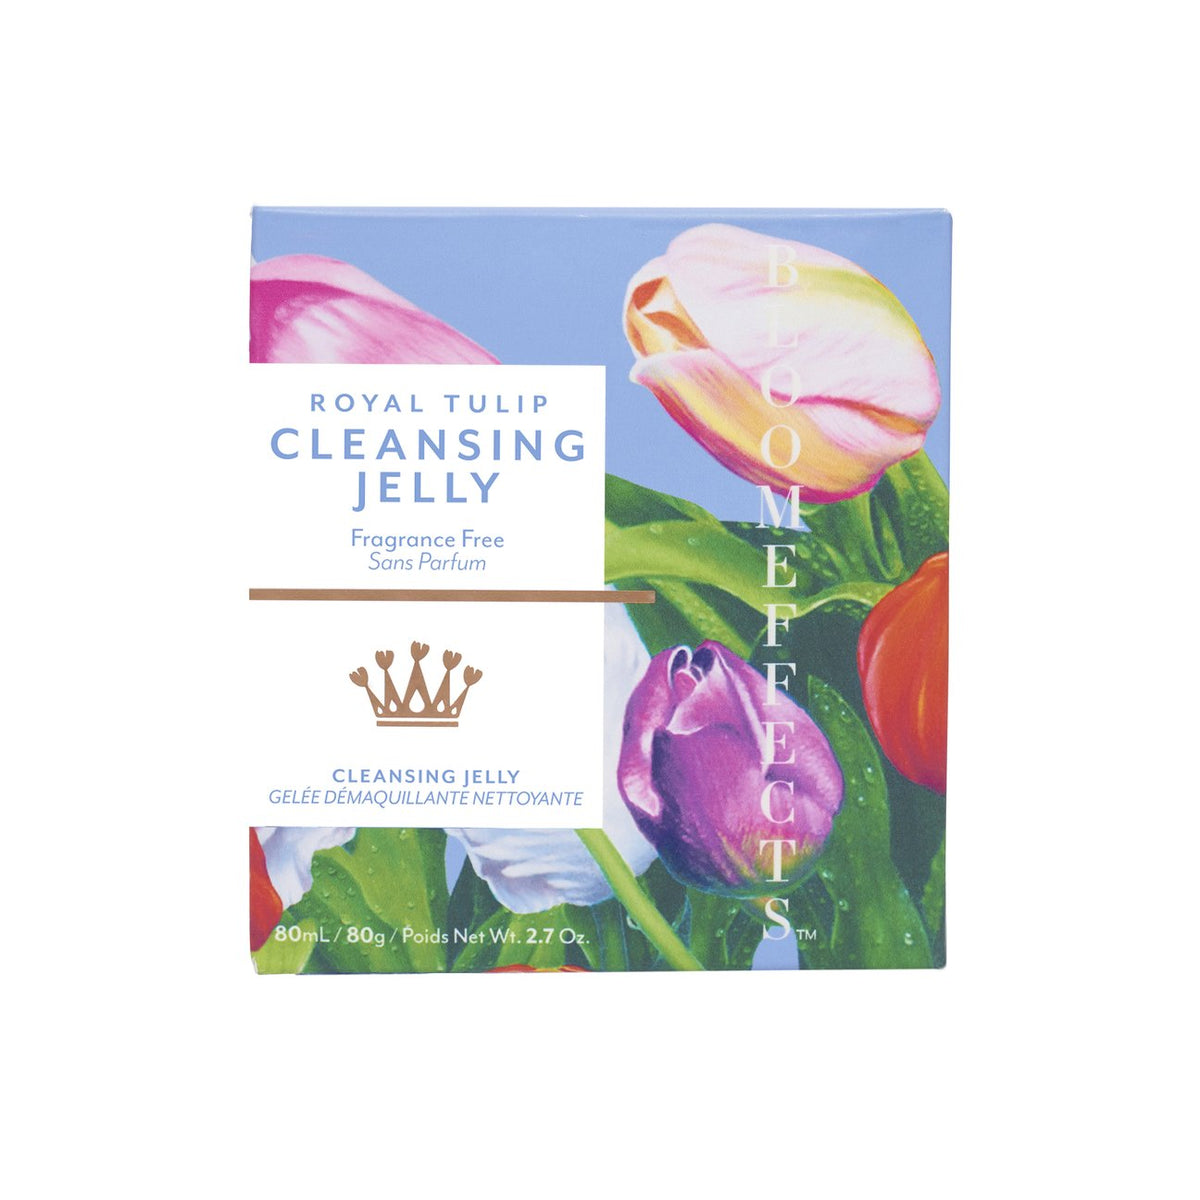 Royal Tulip Cleansing Jelly